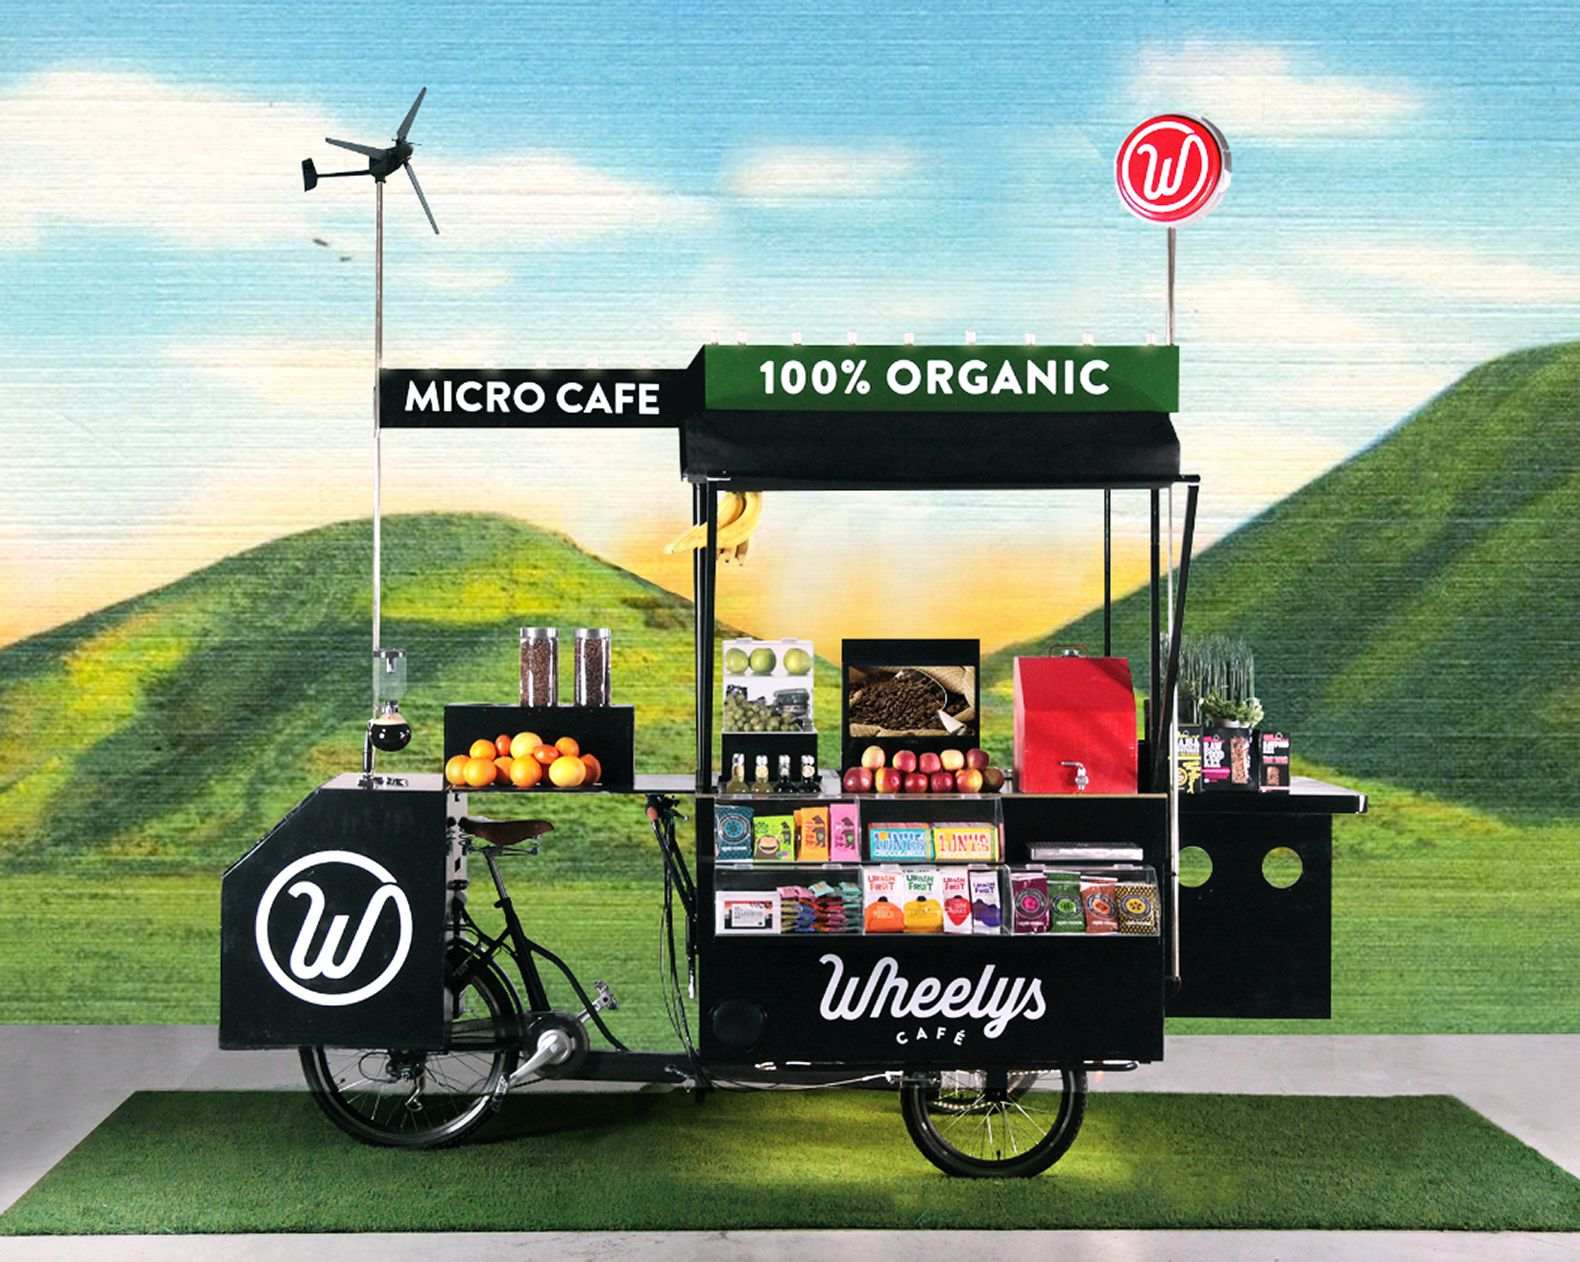 25 of the best food truck designs design galleries paste - New Wheelys 4 Bike Caf Cleans Smoggy Air And Turns Coffee Grounds Into Fertilizer